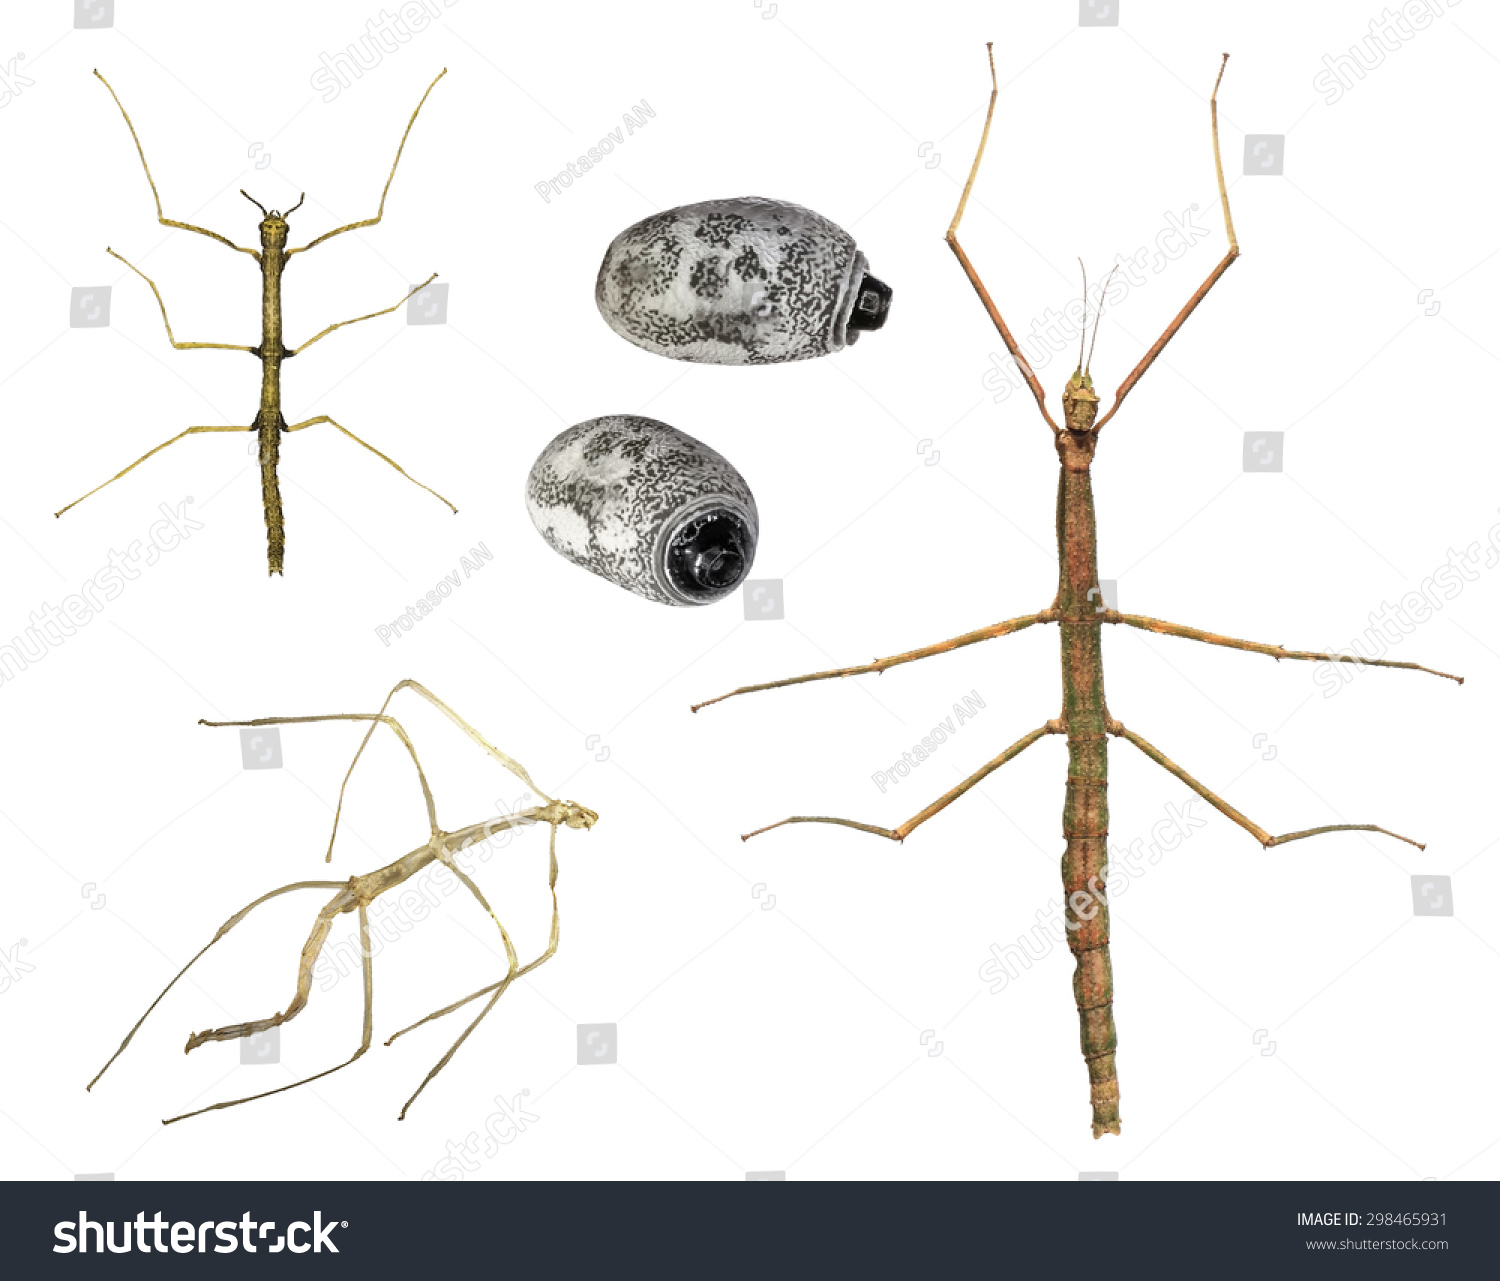 Stages Walking Stick Insect Development Asian Stock Photo